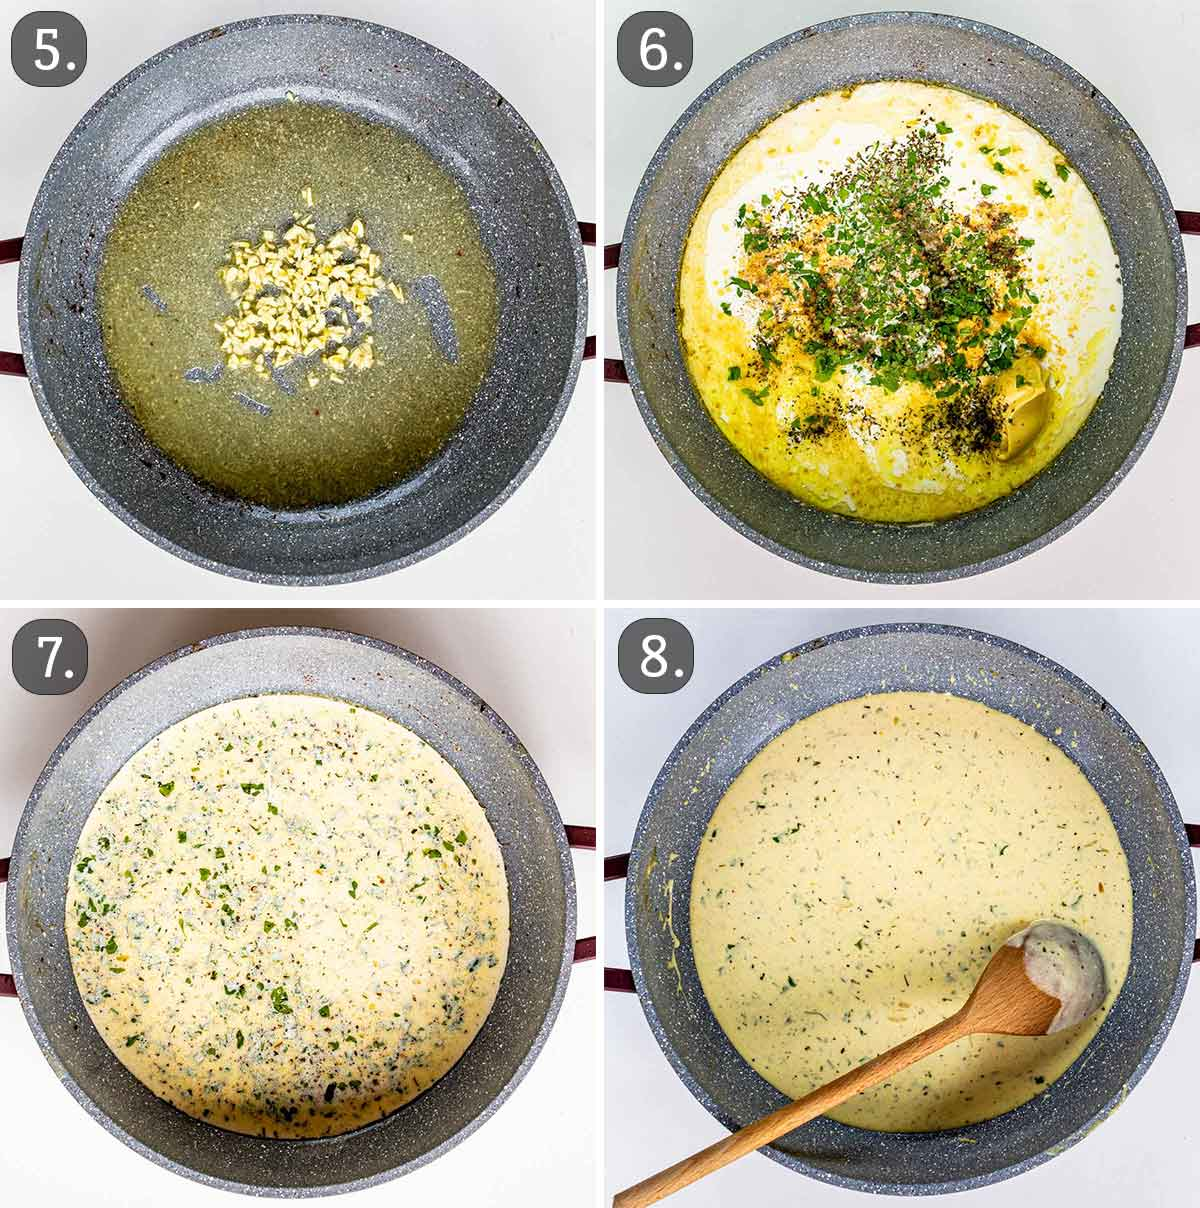 detailed process shots showing how to make mustard sauce.